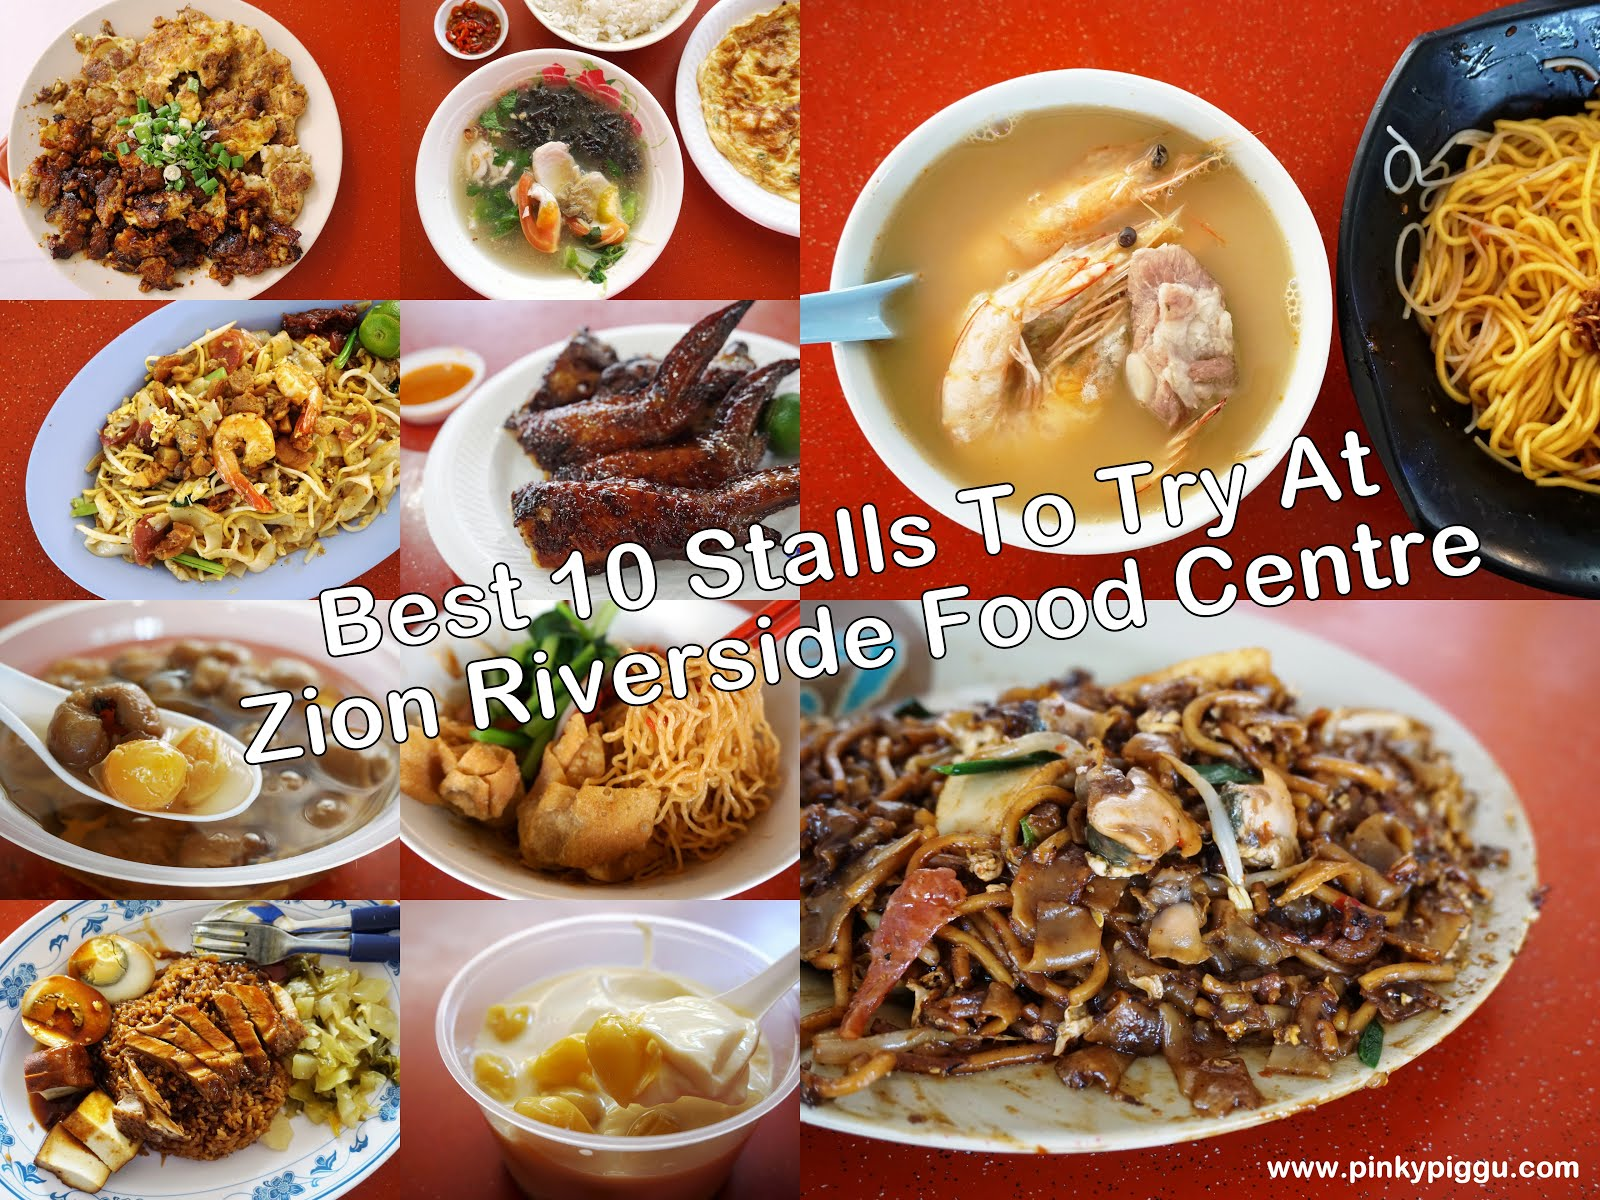 Best 10 Stalls To Try At Zion Riverside Food Centre!